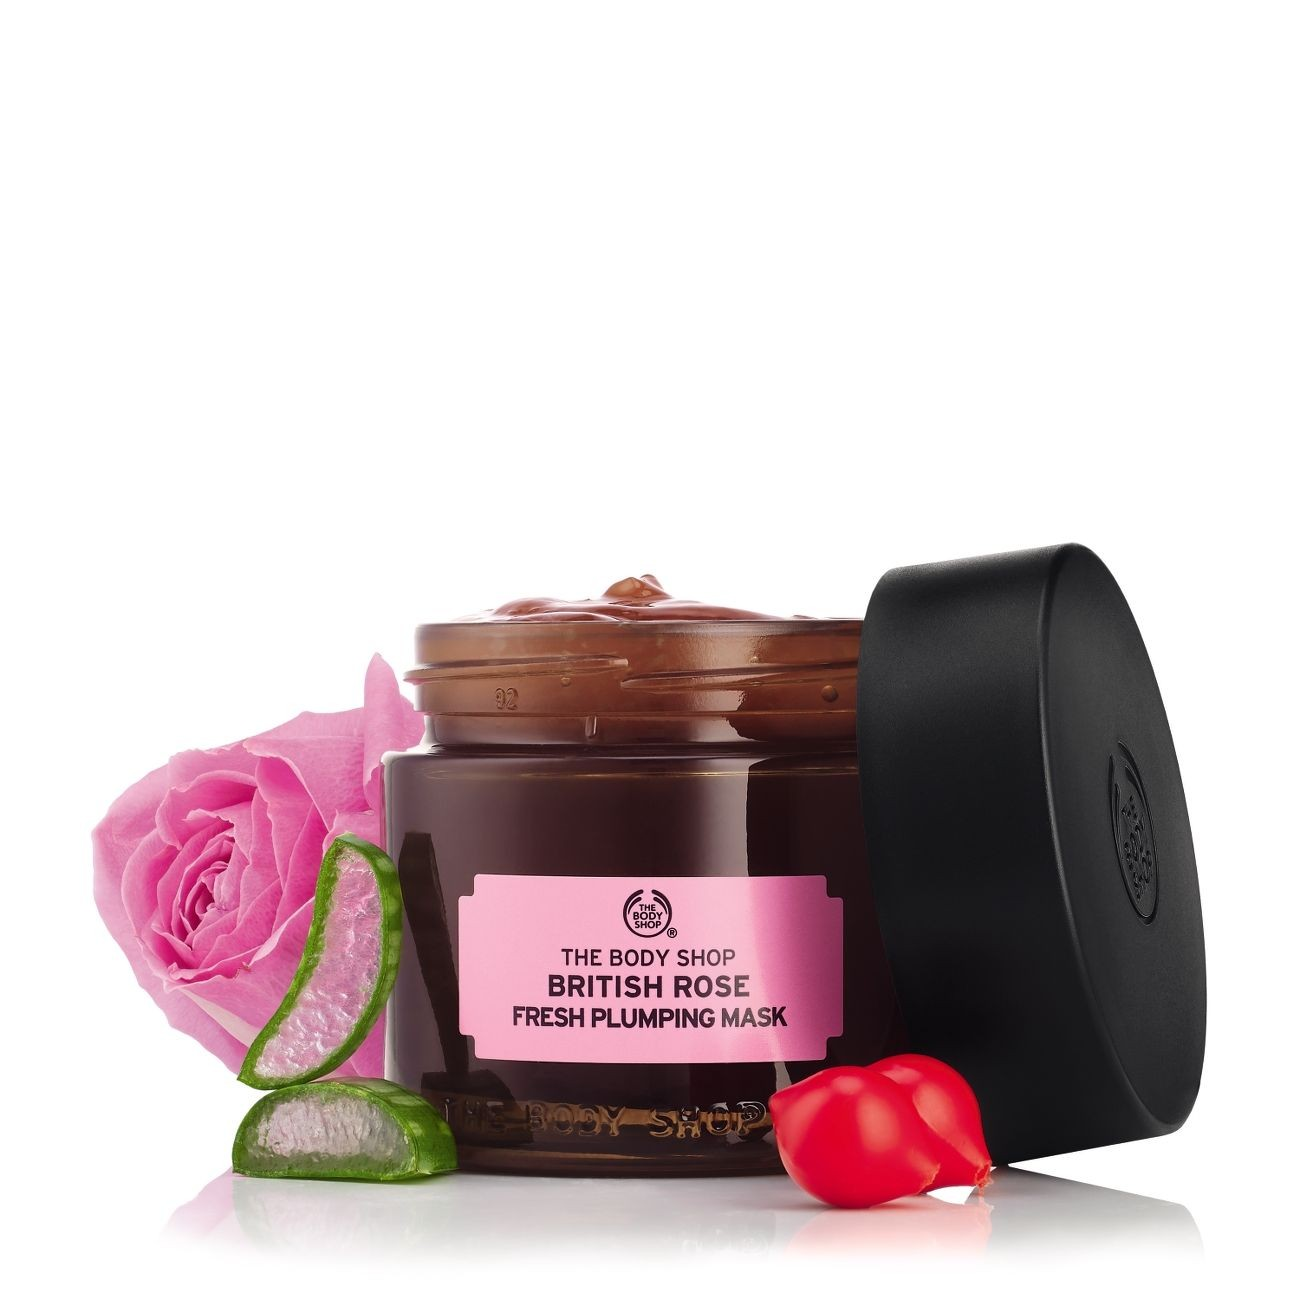 British Rose Fresh Plumping Mask 75gr - The Body Shop